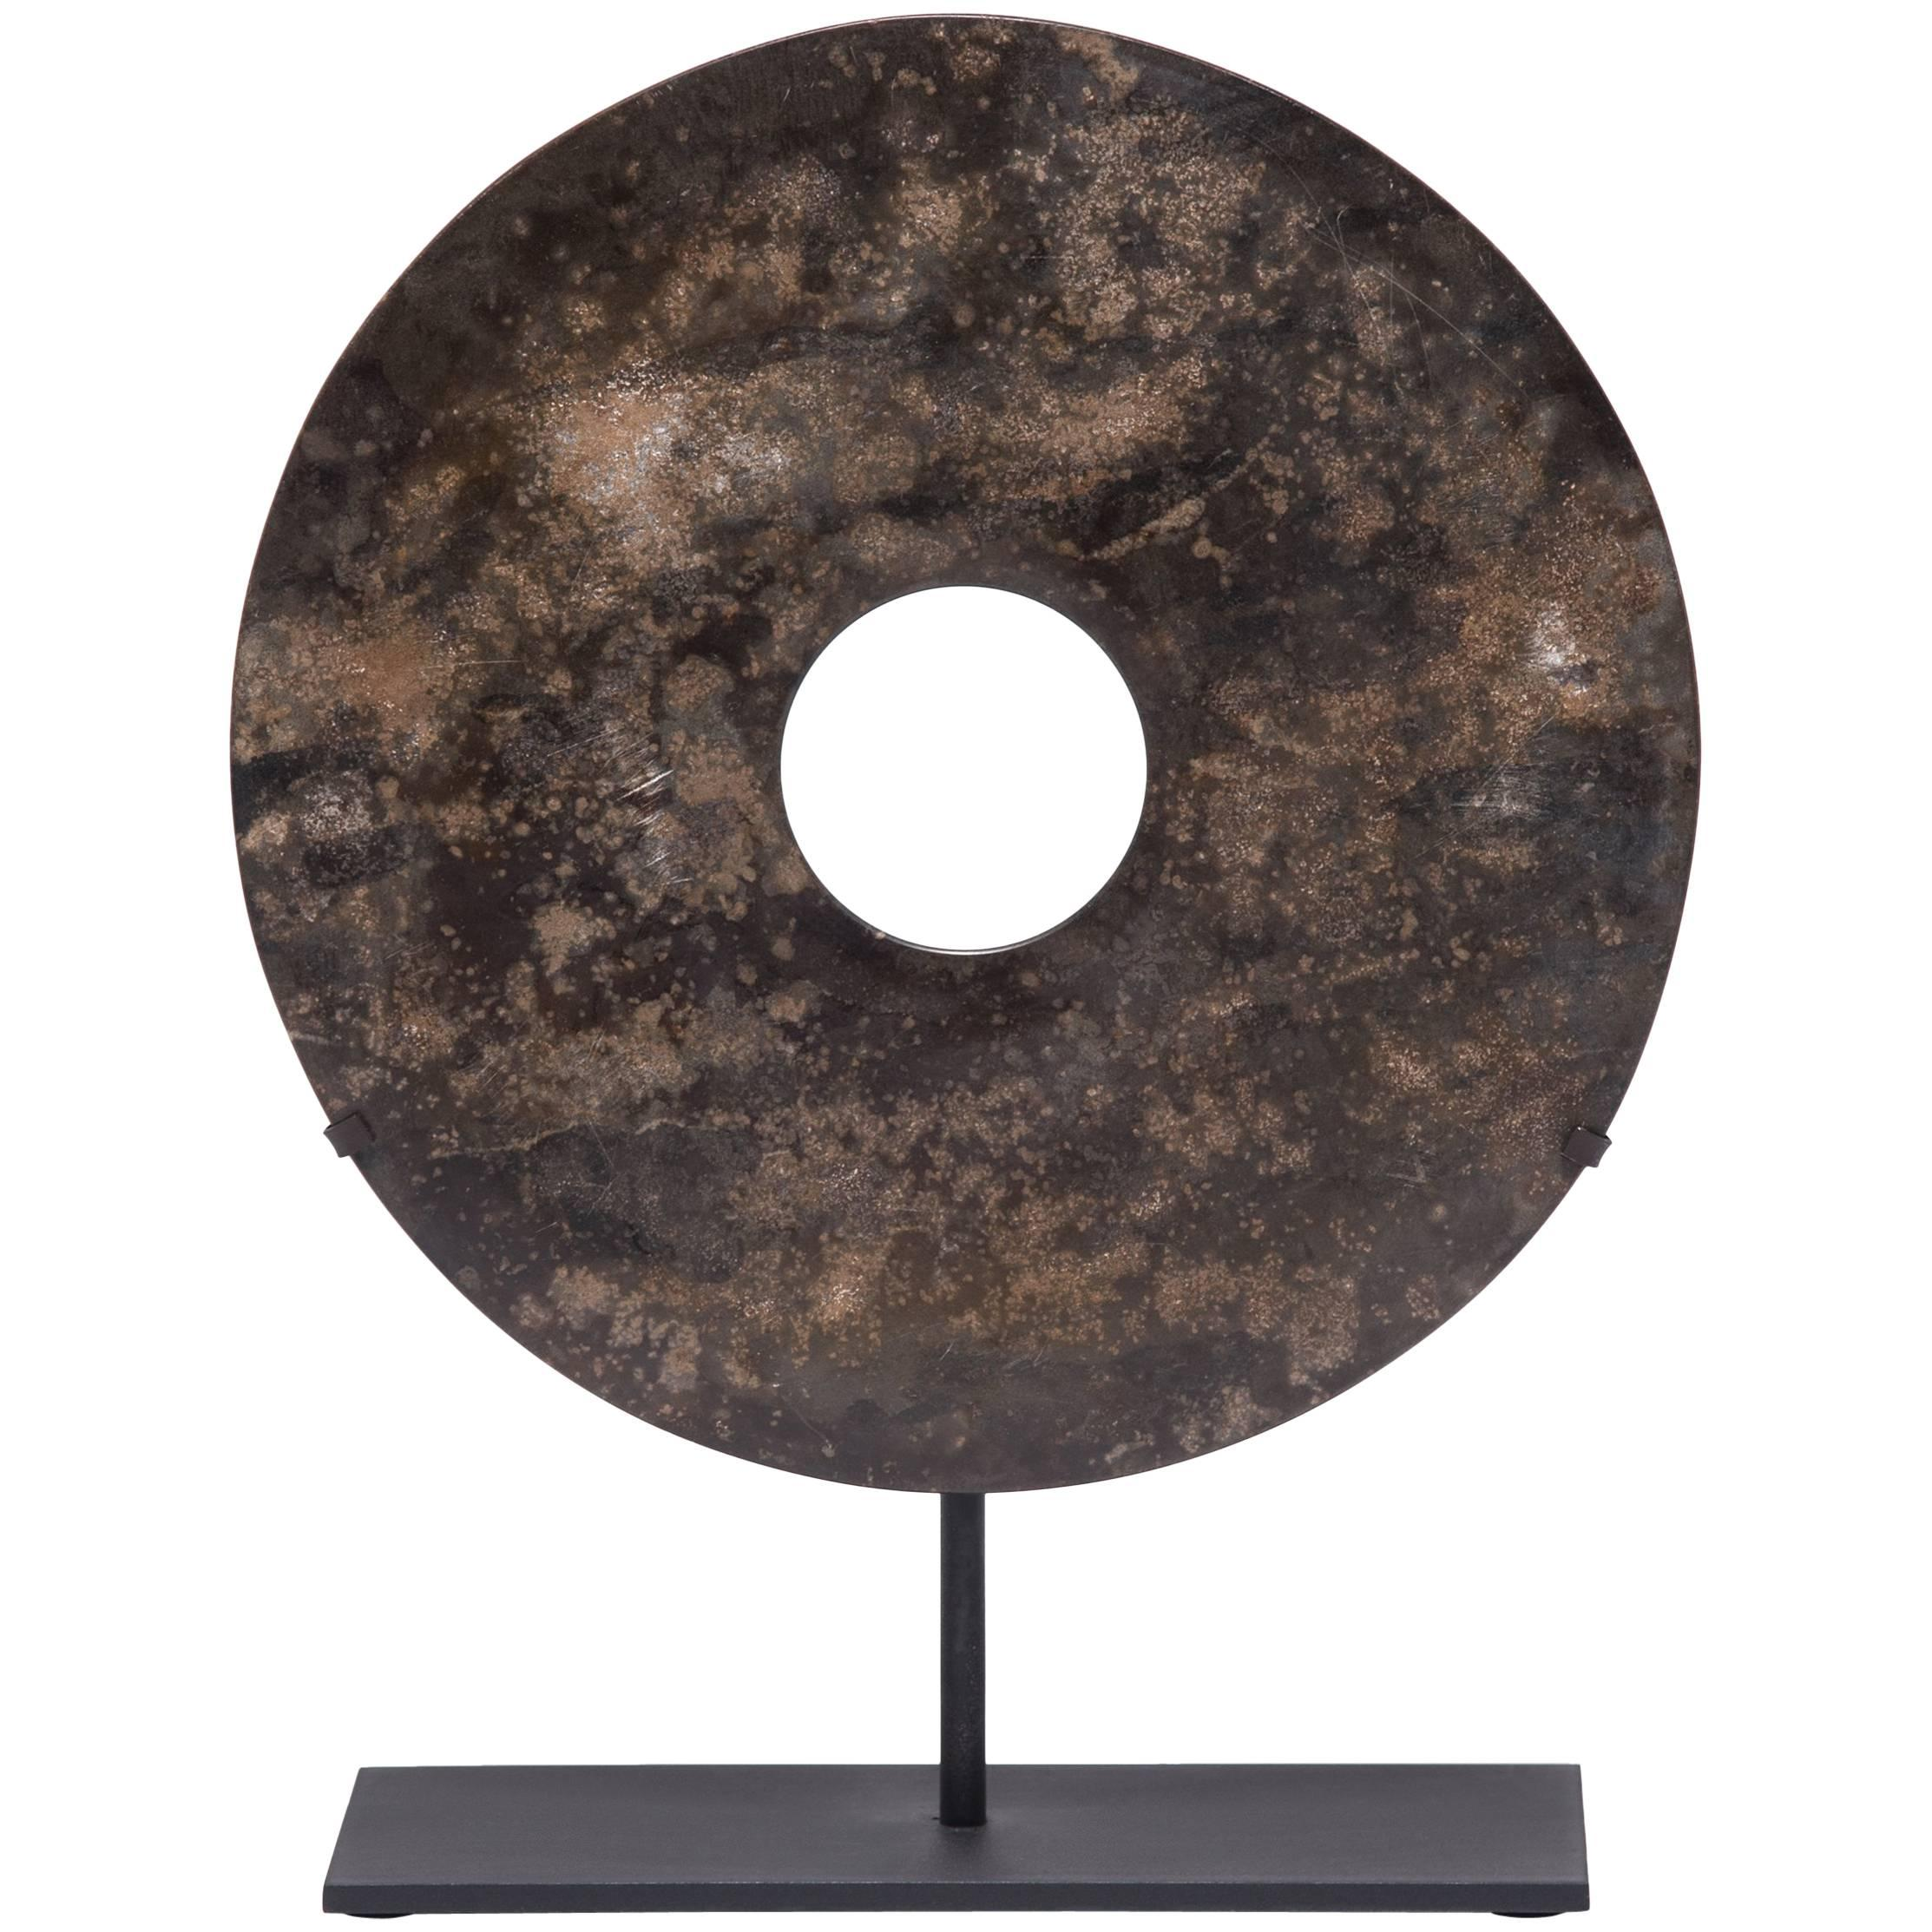 Authentic jade bi disc from ancient china 4000 years old for sale at authentic jade bi disc from ancient china 4000 years old for sale at 1stdibs biocorpaavc Choice Image